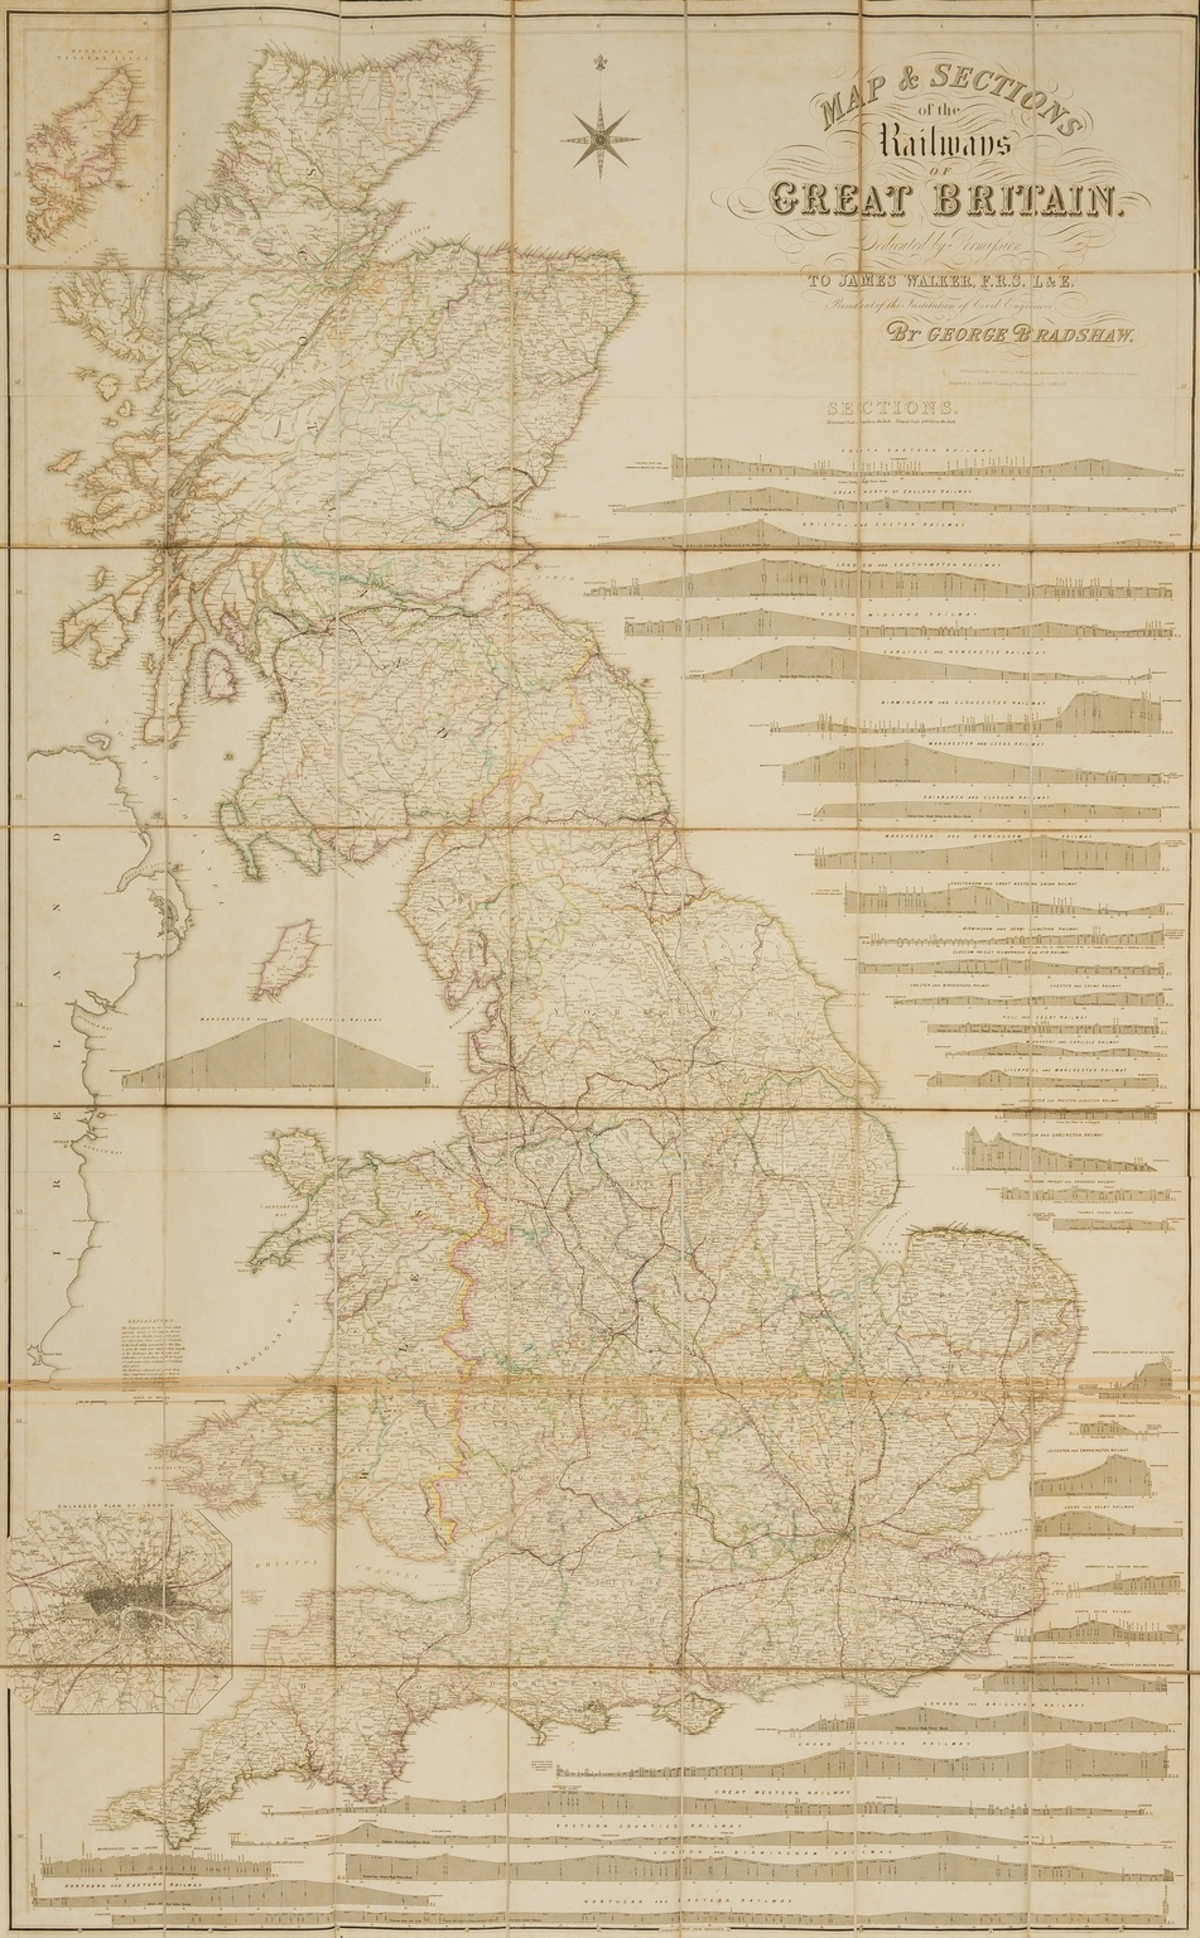 Railways.- Bradshaw (George) Map & Sections of the Railways of Great Britain, 1839; together with …